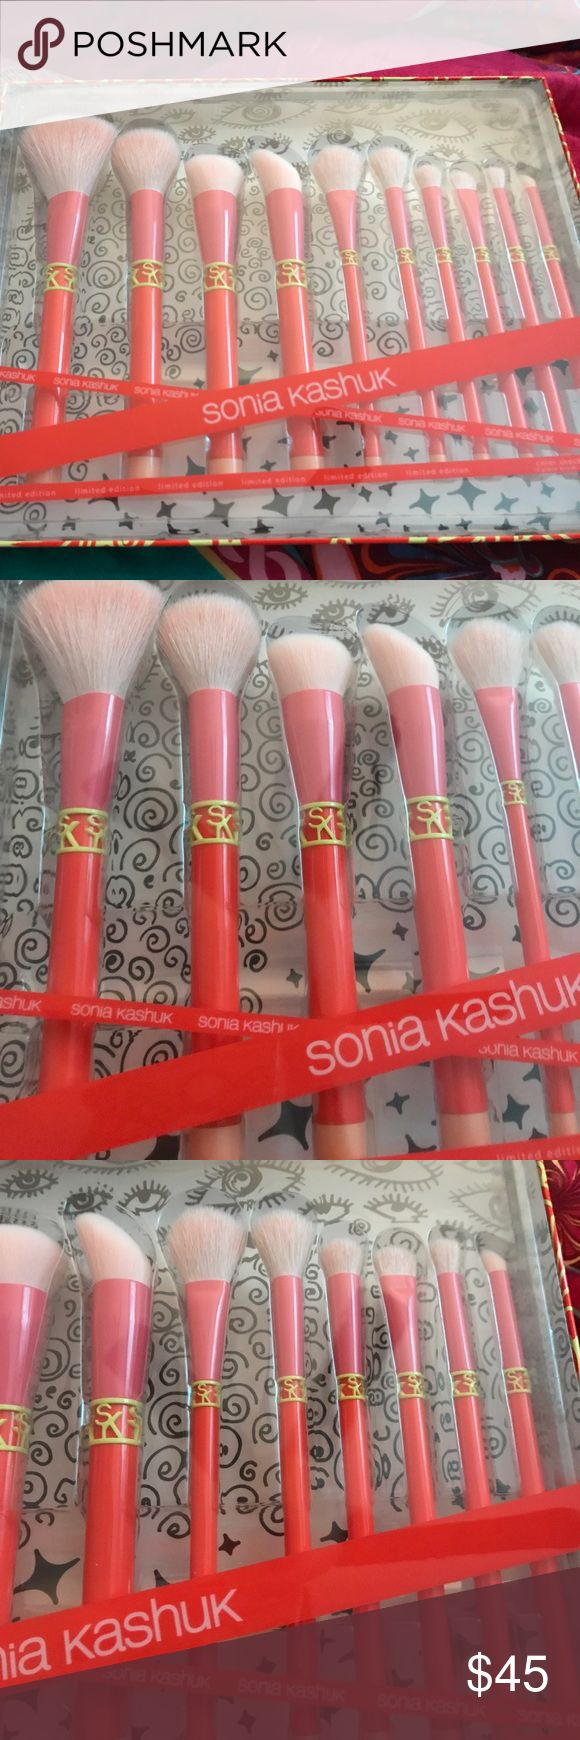 🔥 MAKE AN OFFER 🔥 Sonia Kashuk 10 pc brush set! limited edition set! nwt! never opened! 3 available! gorgeous colors! Sonia Kashuk Makeup Brushes & Tools